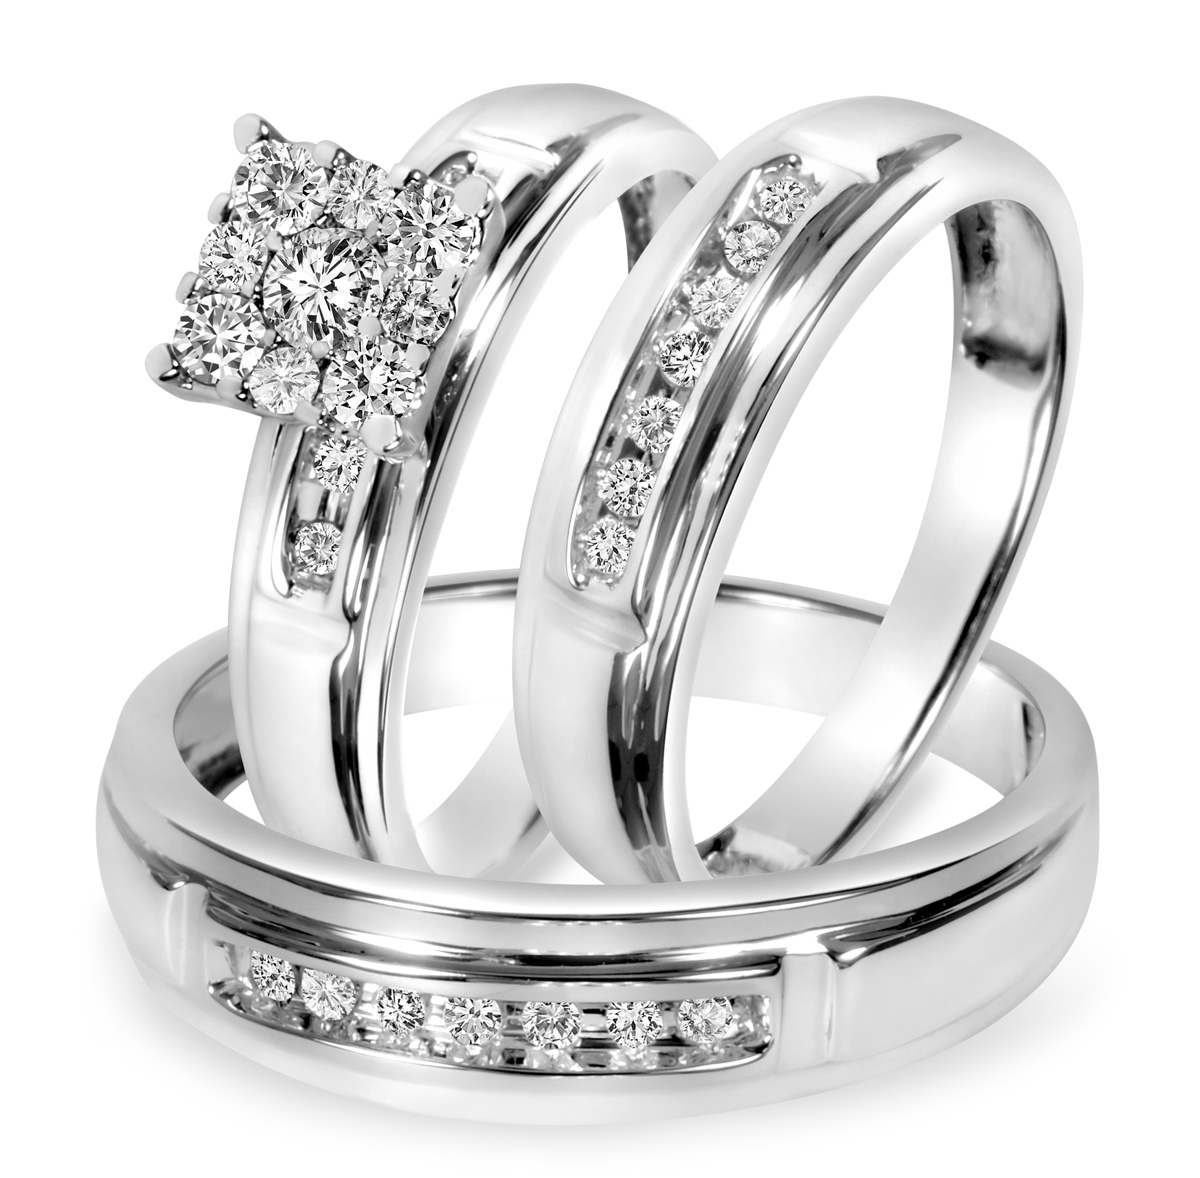 tw diamond trio matching wedding ring set 10k white gold my trio rings bt518w10k - White Gold Wedding Rings